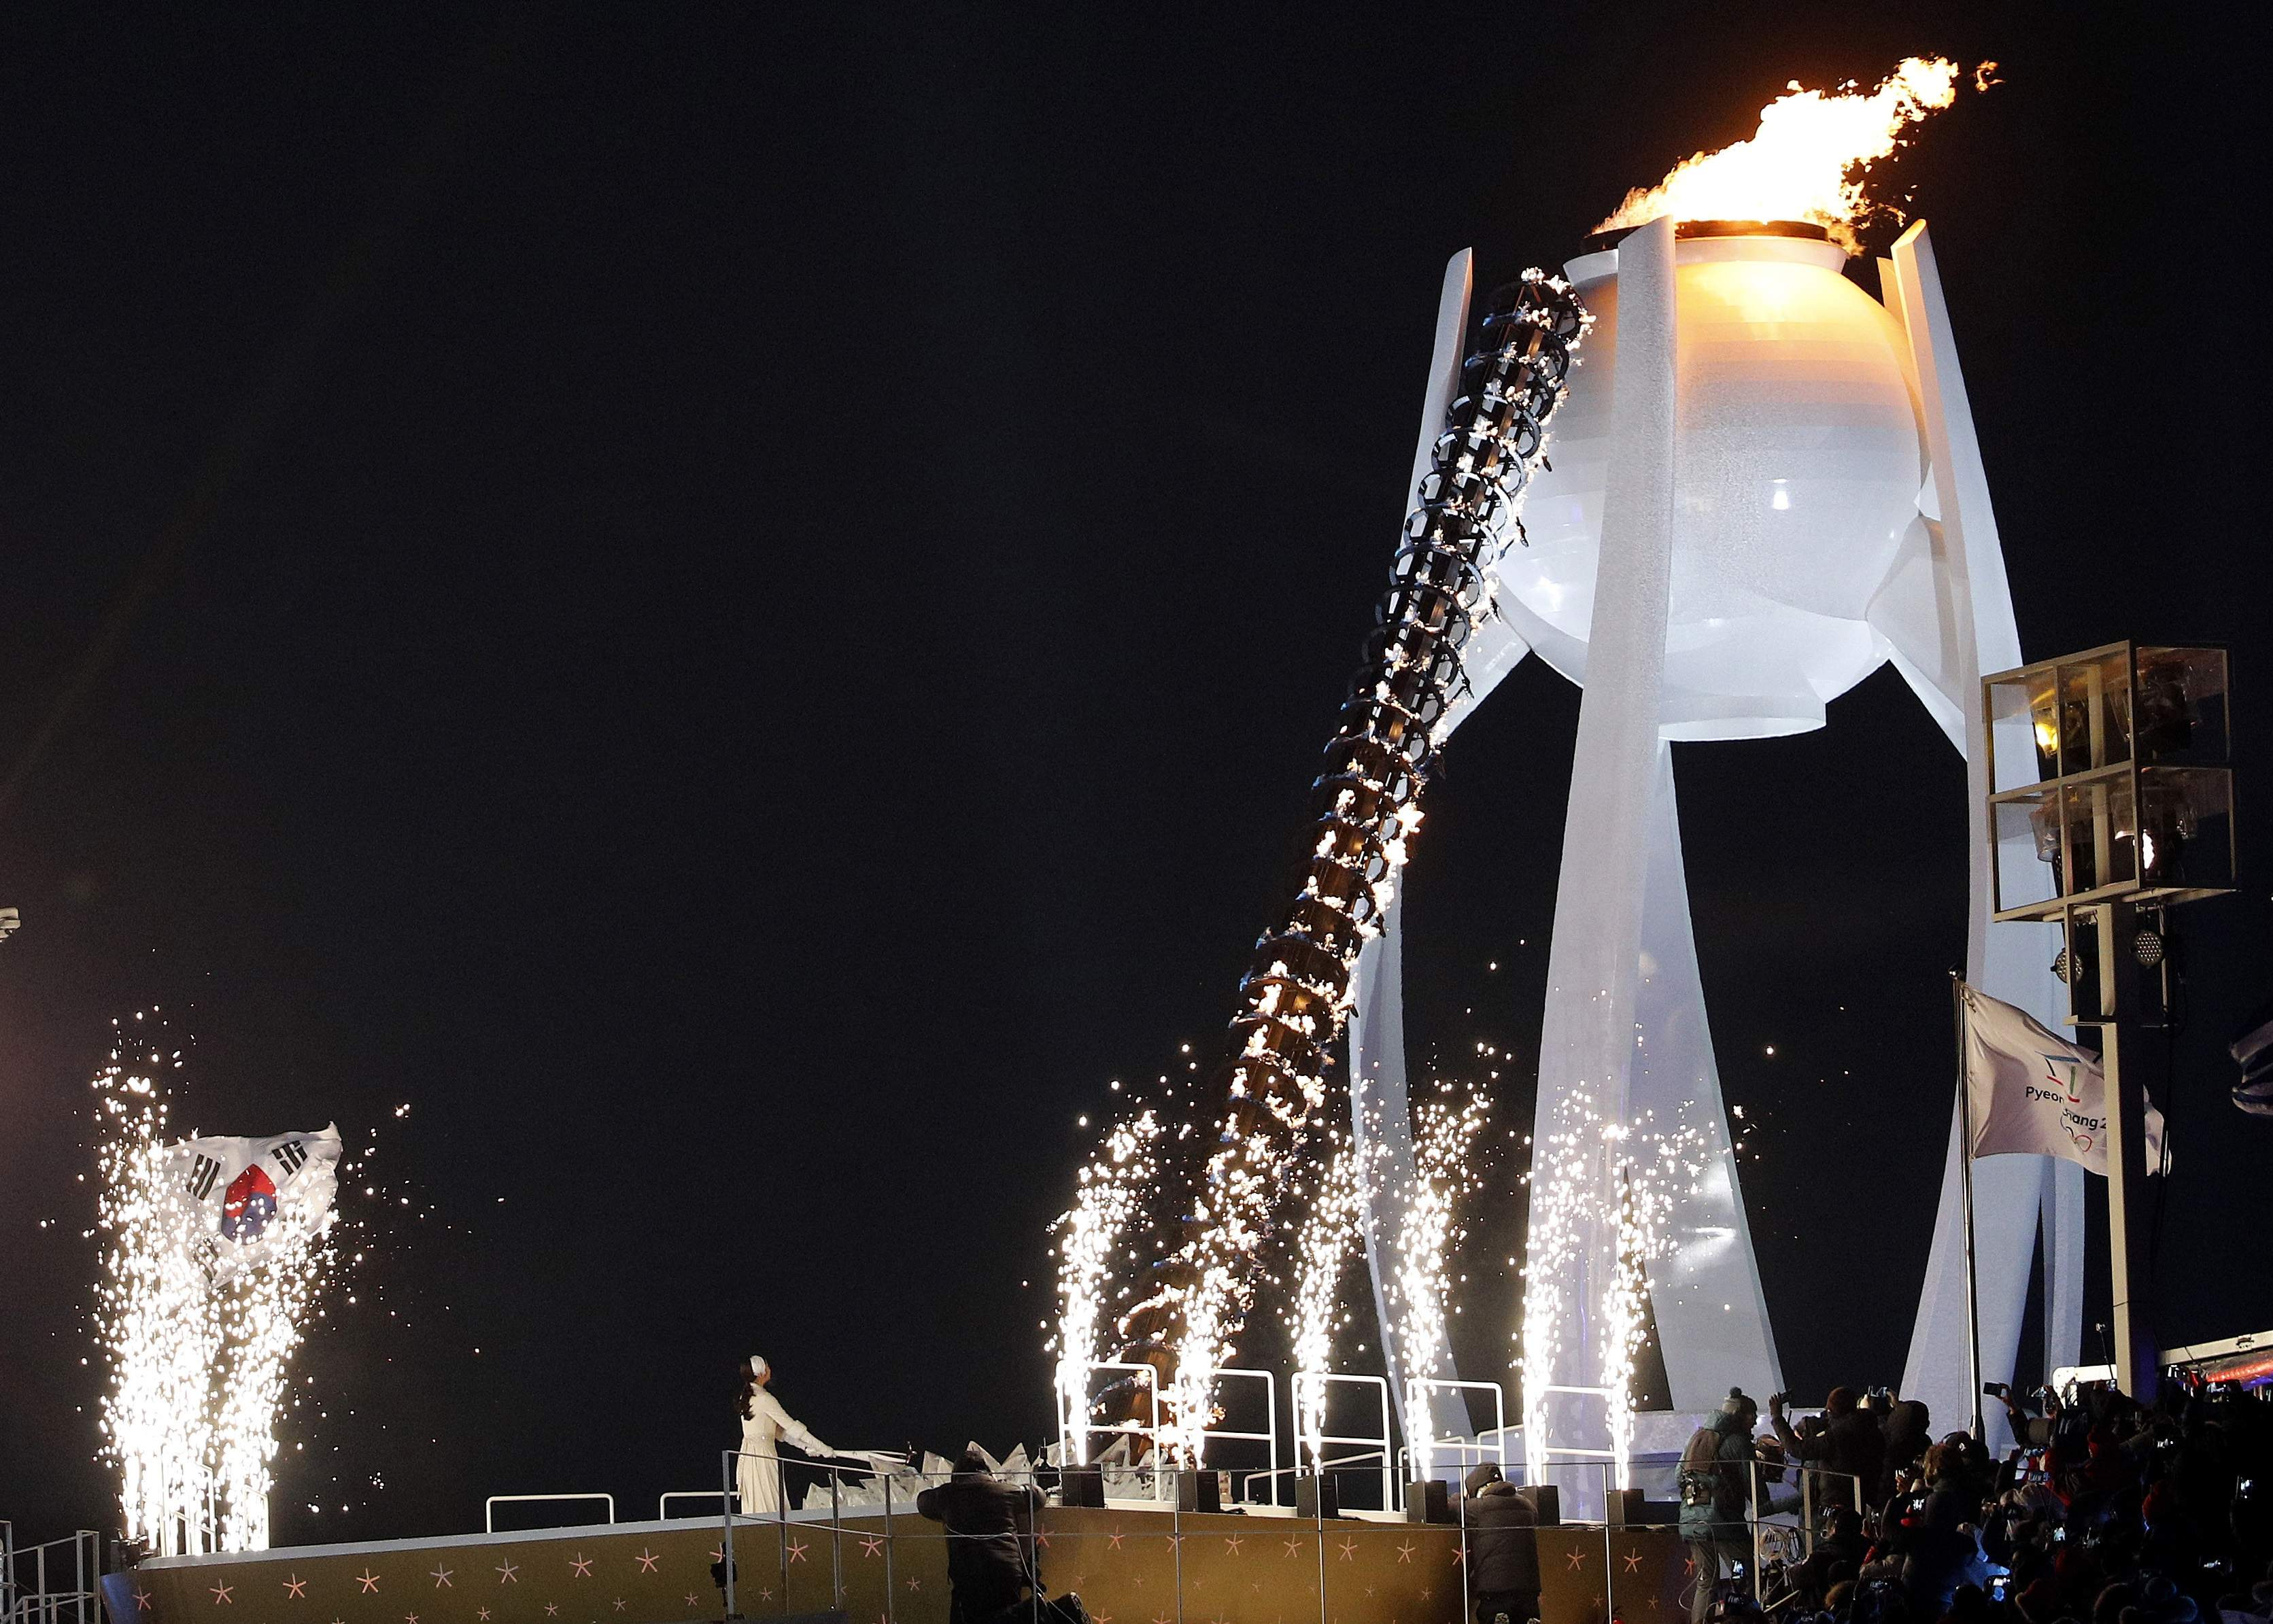 Yuna Kim lights Olympic flame during the opening ceremony of the 2018 Winter Olympics in Pyeongchang, South Korea, Friday, Feb. 9, 2018. (AP Photo/Christophe Ena)